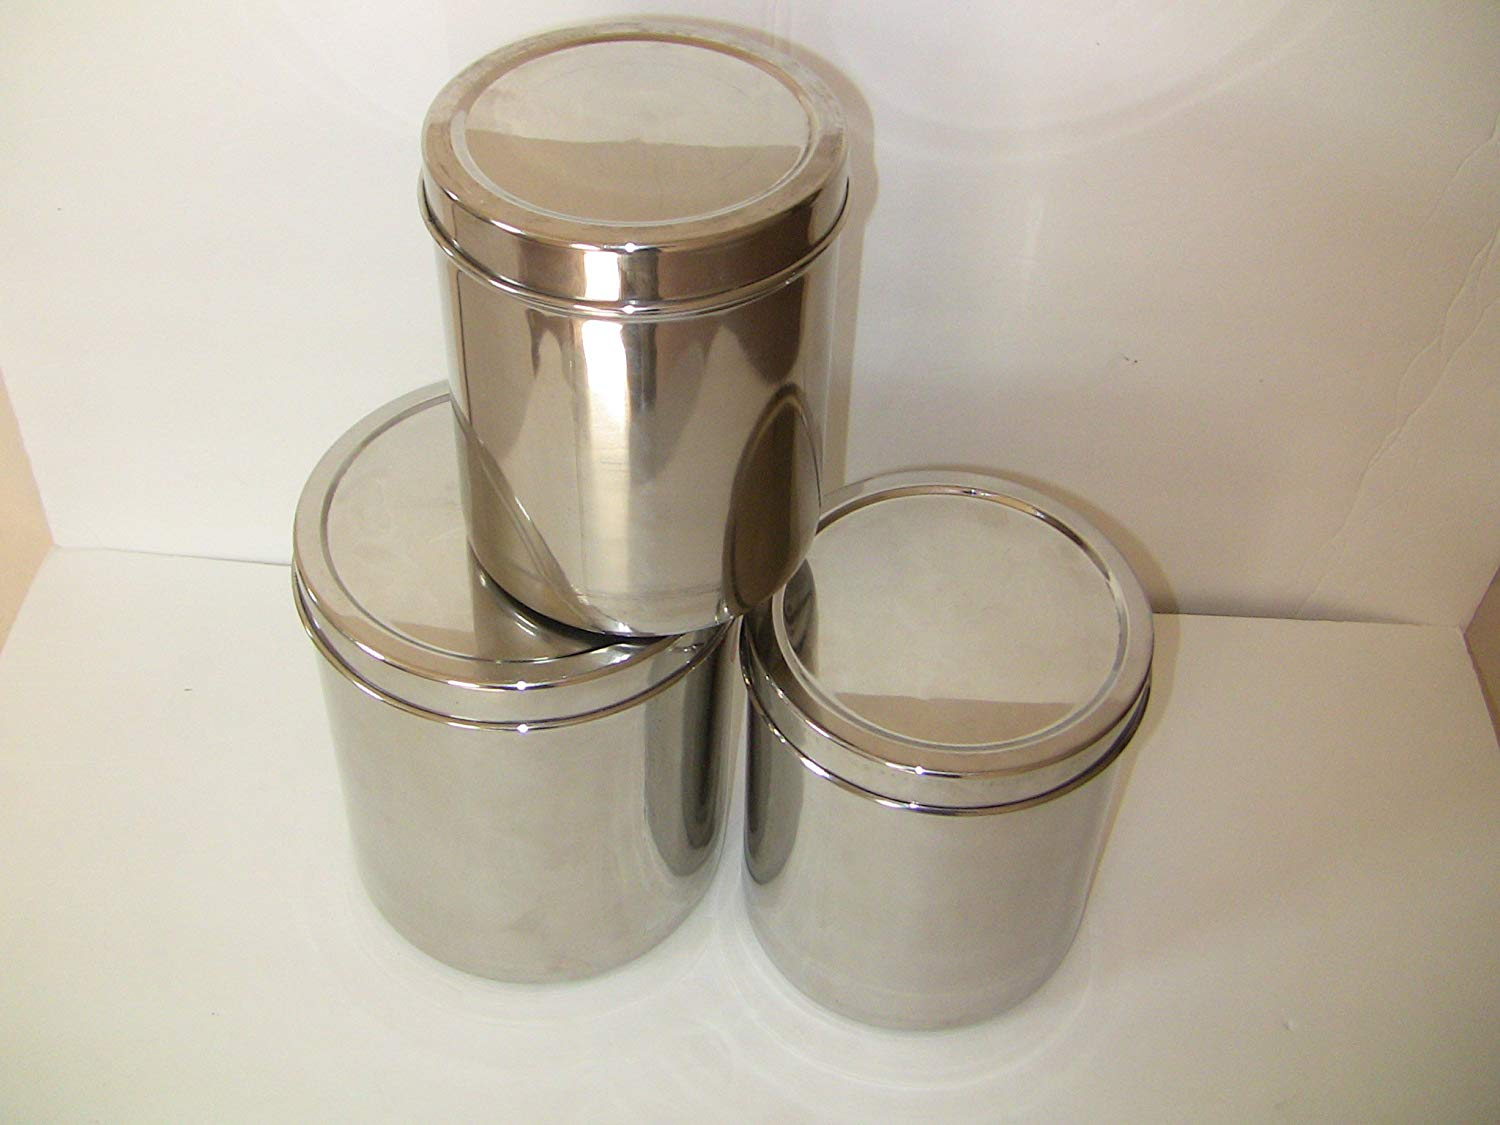 Qualways Jumbo Stainless Steel Kitchen Canister Set of 4 (Set of 4), 6.5  lb, 5 lb. 4 lb and 3 lb canister set